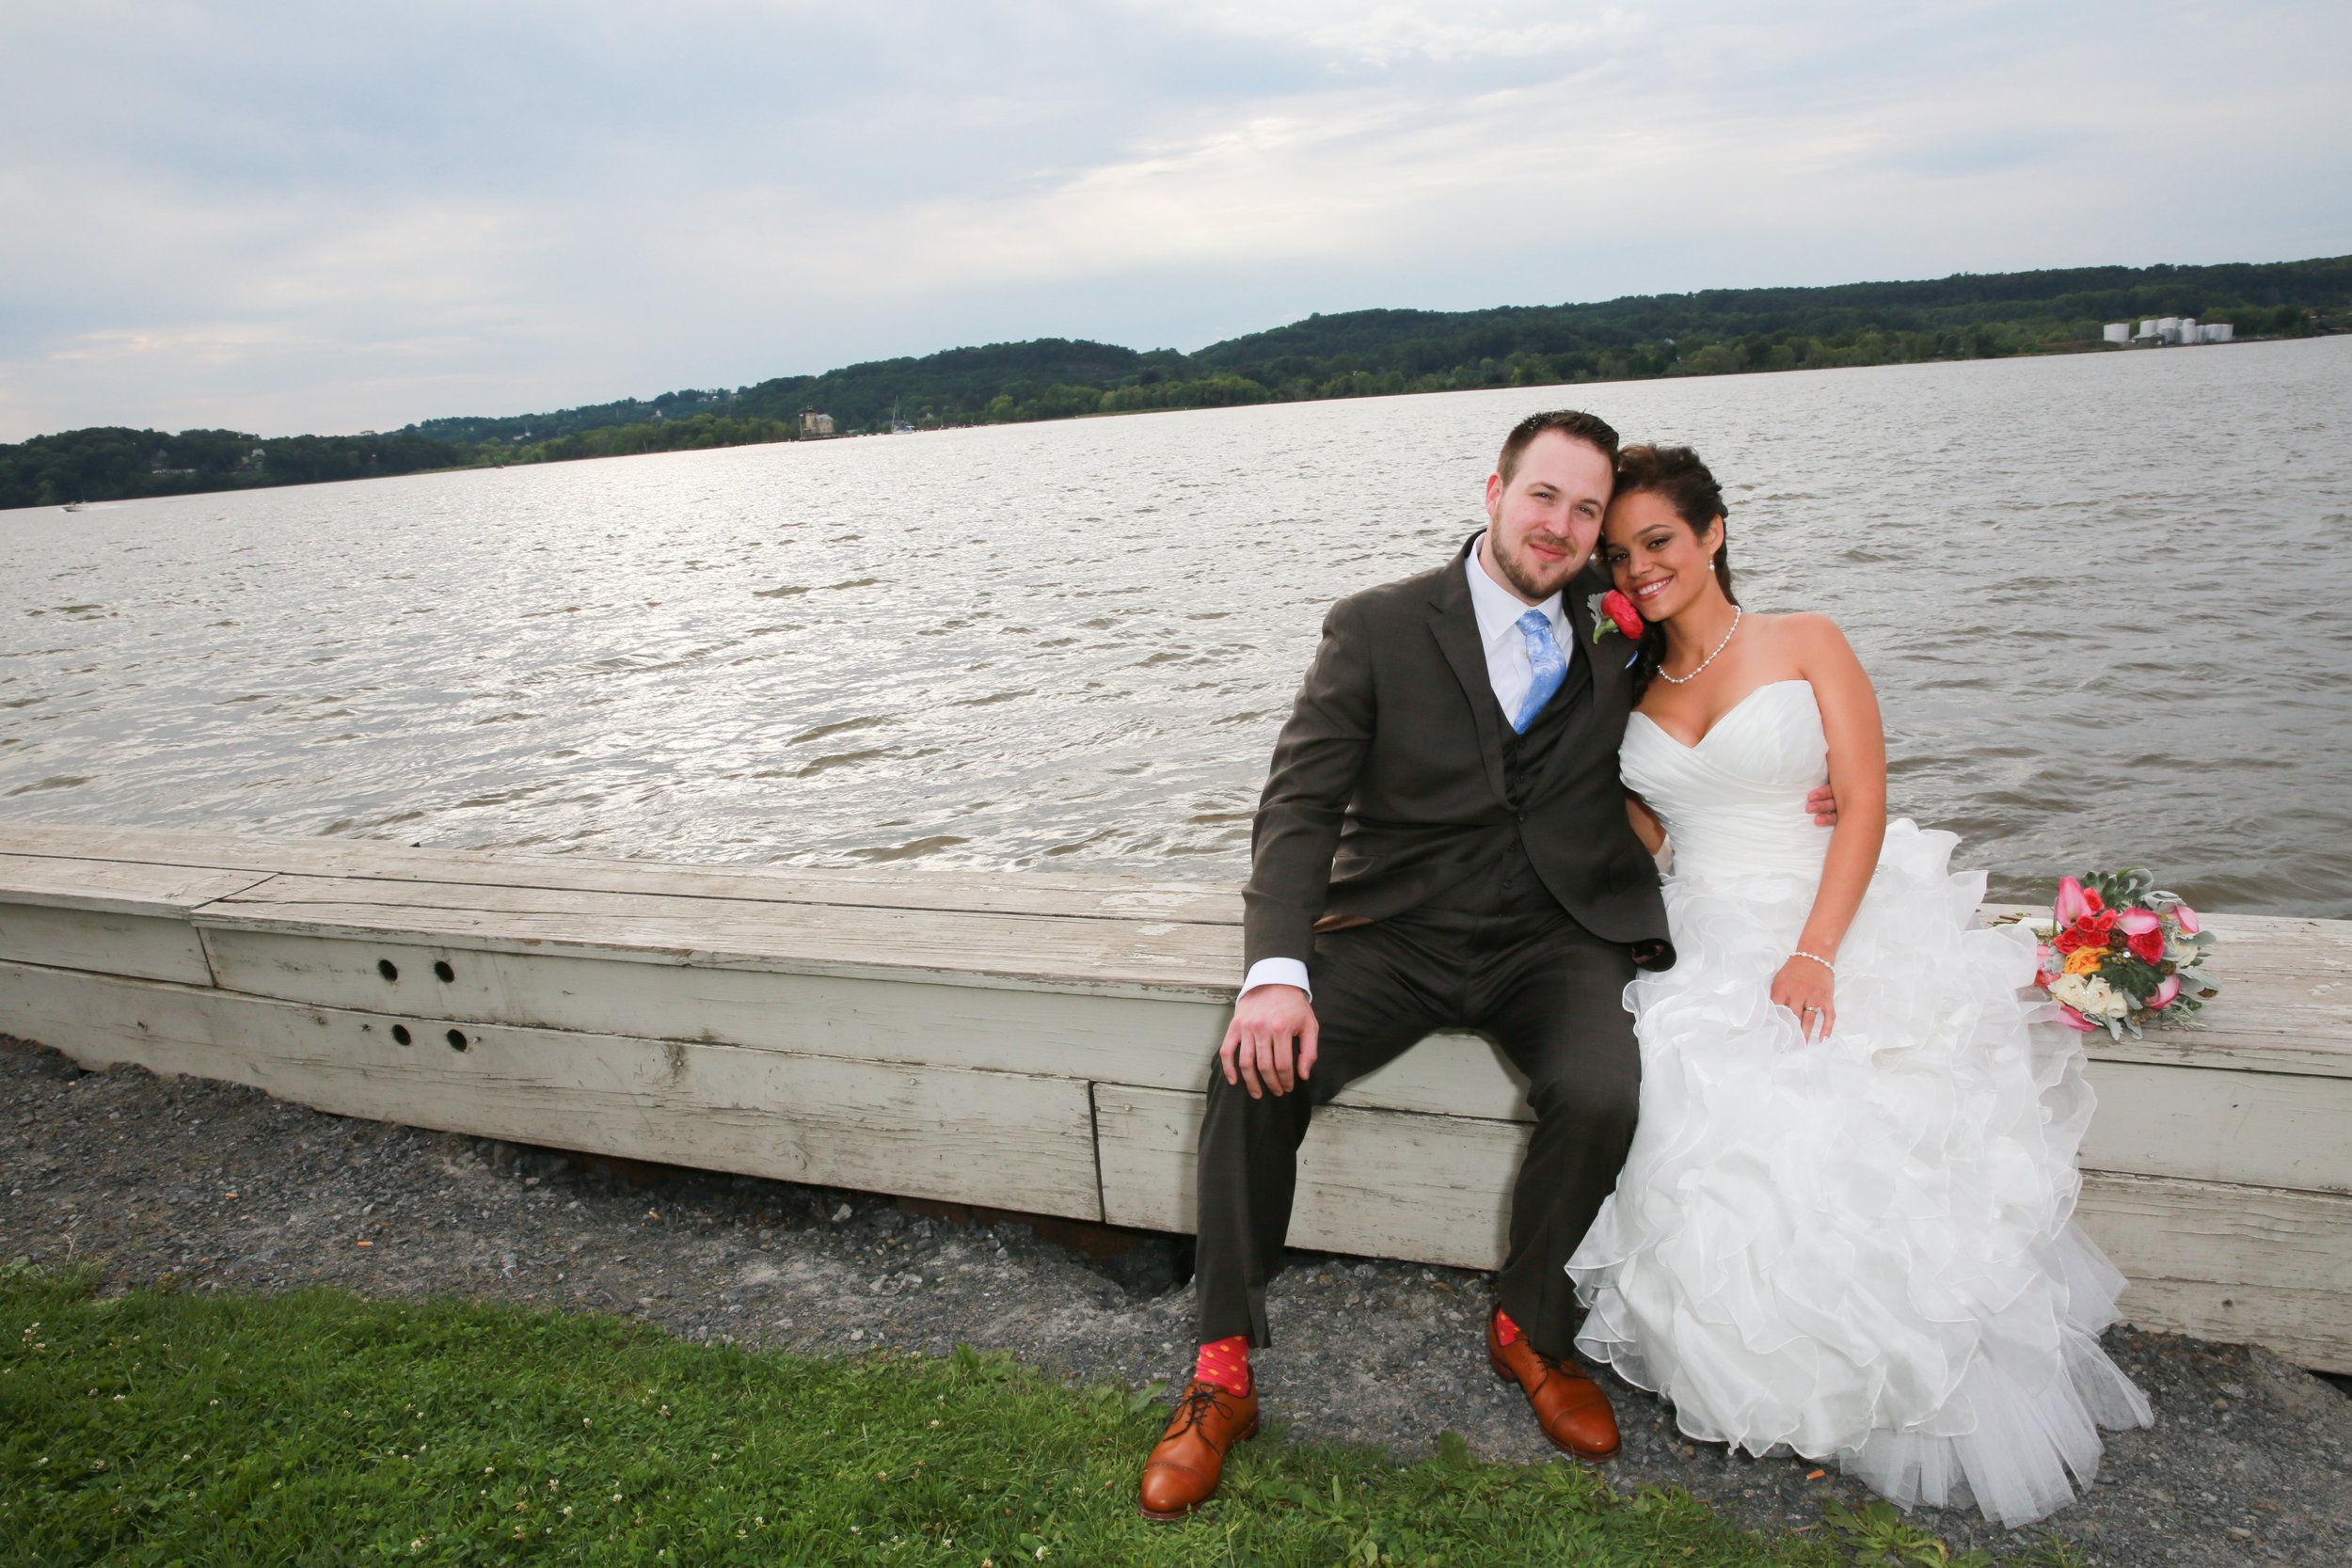 Wedding at the Rhinecliff by Aperture Photography